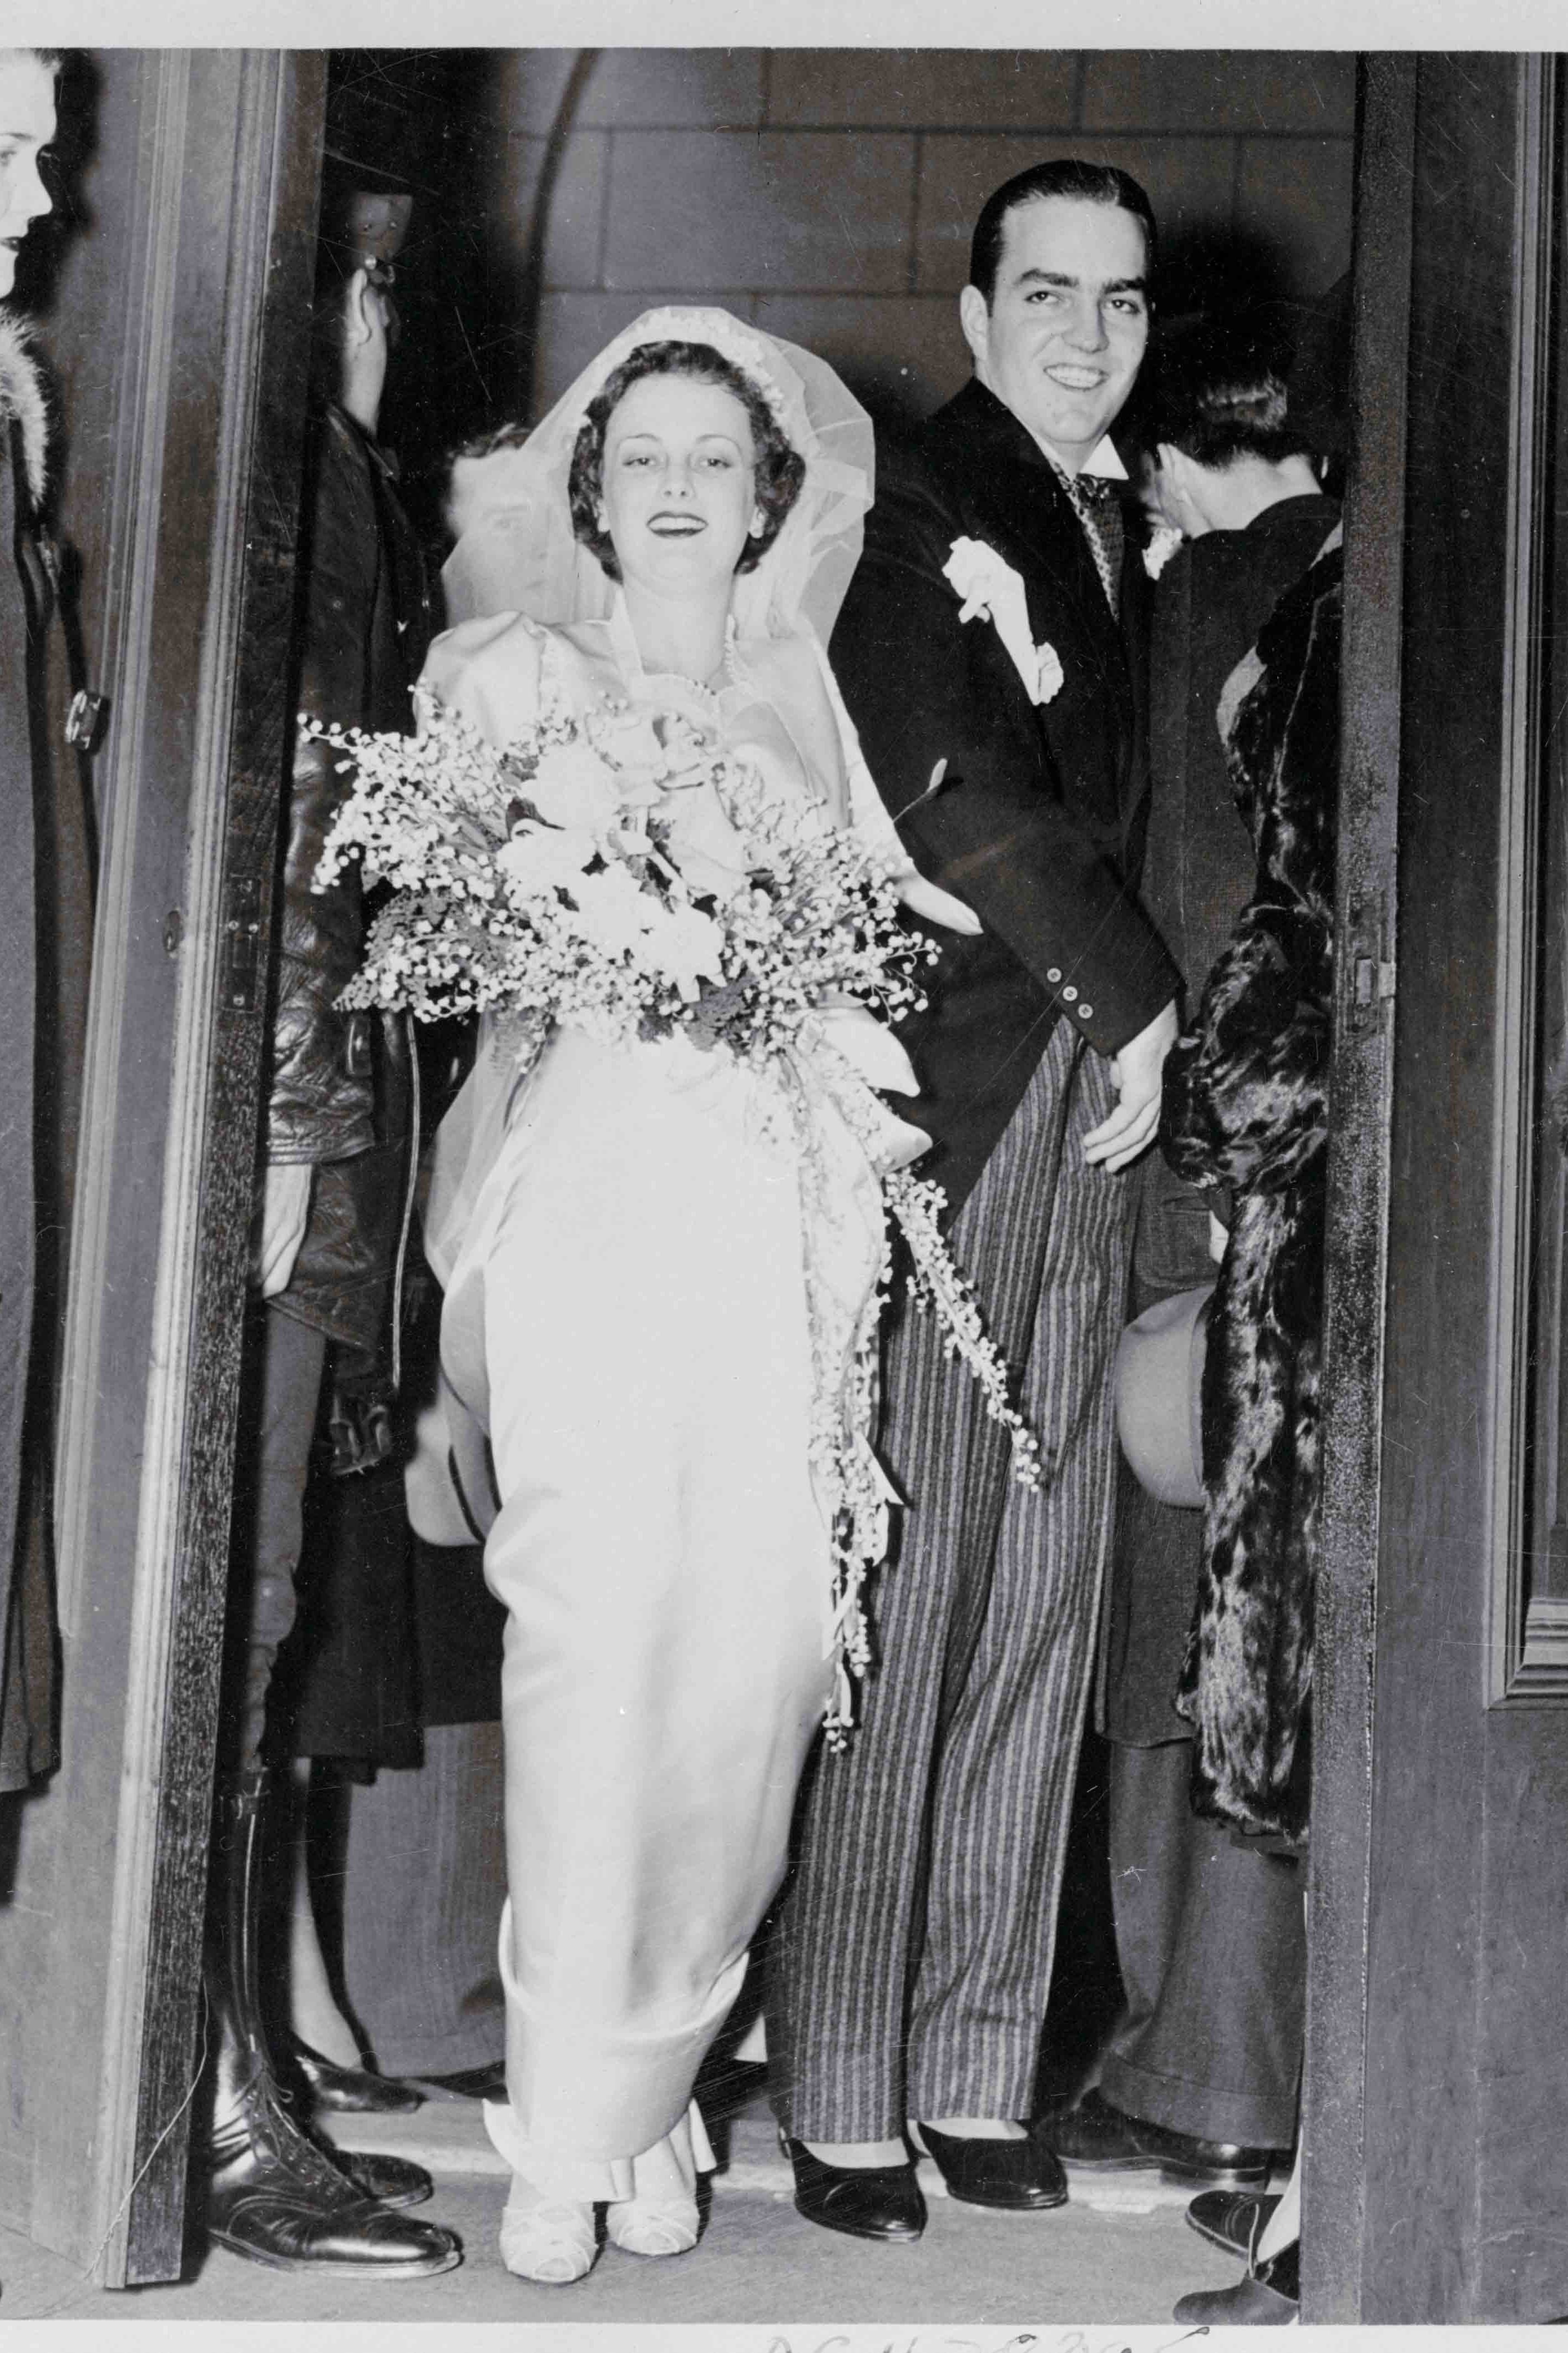 Miss Catherine Wood Campbell's Wedding Dress In what was called Atlanta's wedding of the year, Catherine Wood Campbell married Randolph Apperson Hearst in 1938. Catherine was the only daughter of Morton Campbell, a wealthy telephone company executive while Randolph was the son of William Randolph Hearst, a media mogul (full disclosure: Marie Claire is a subsidiary of The Hearst Corporation).